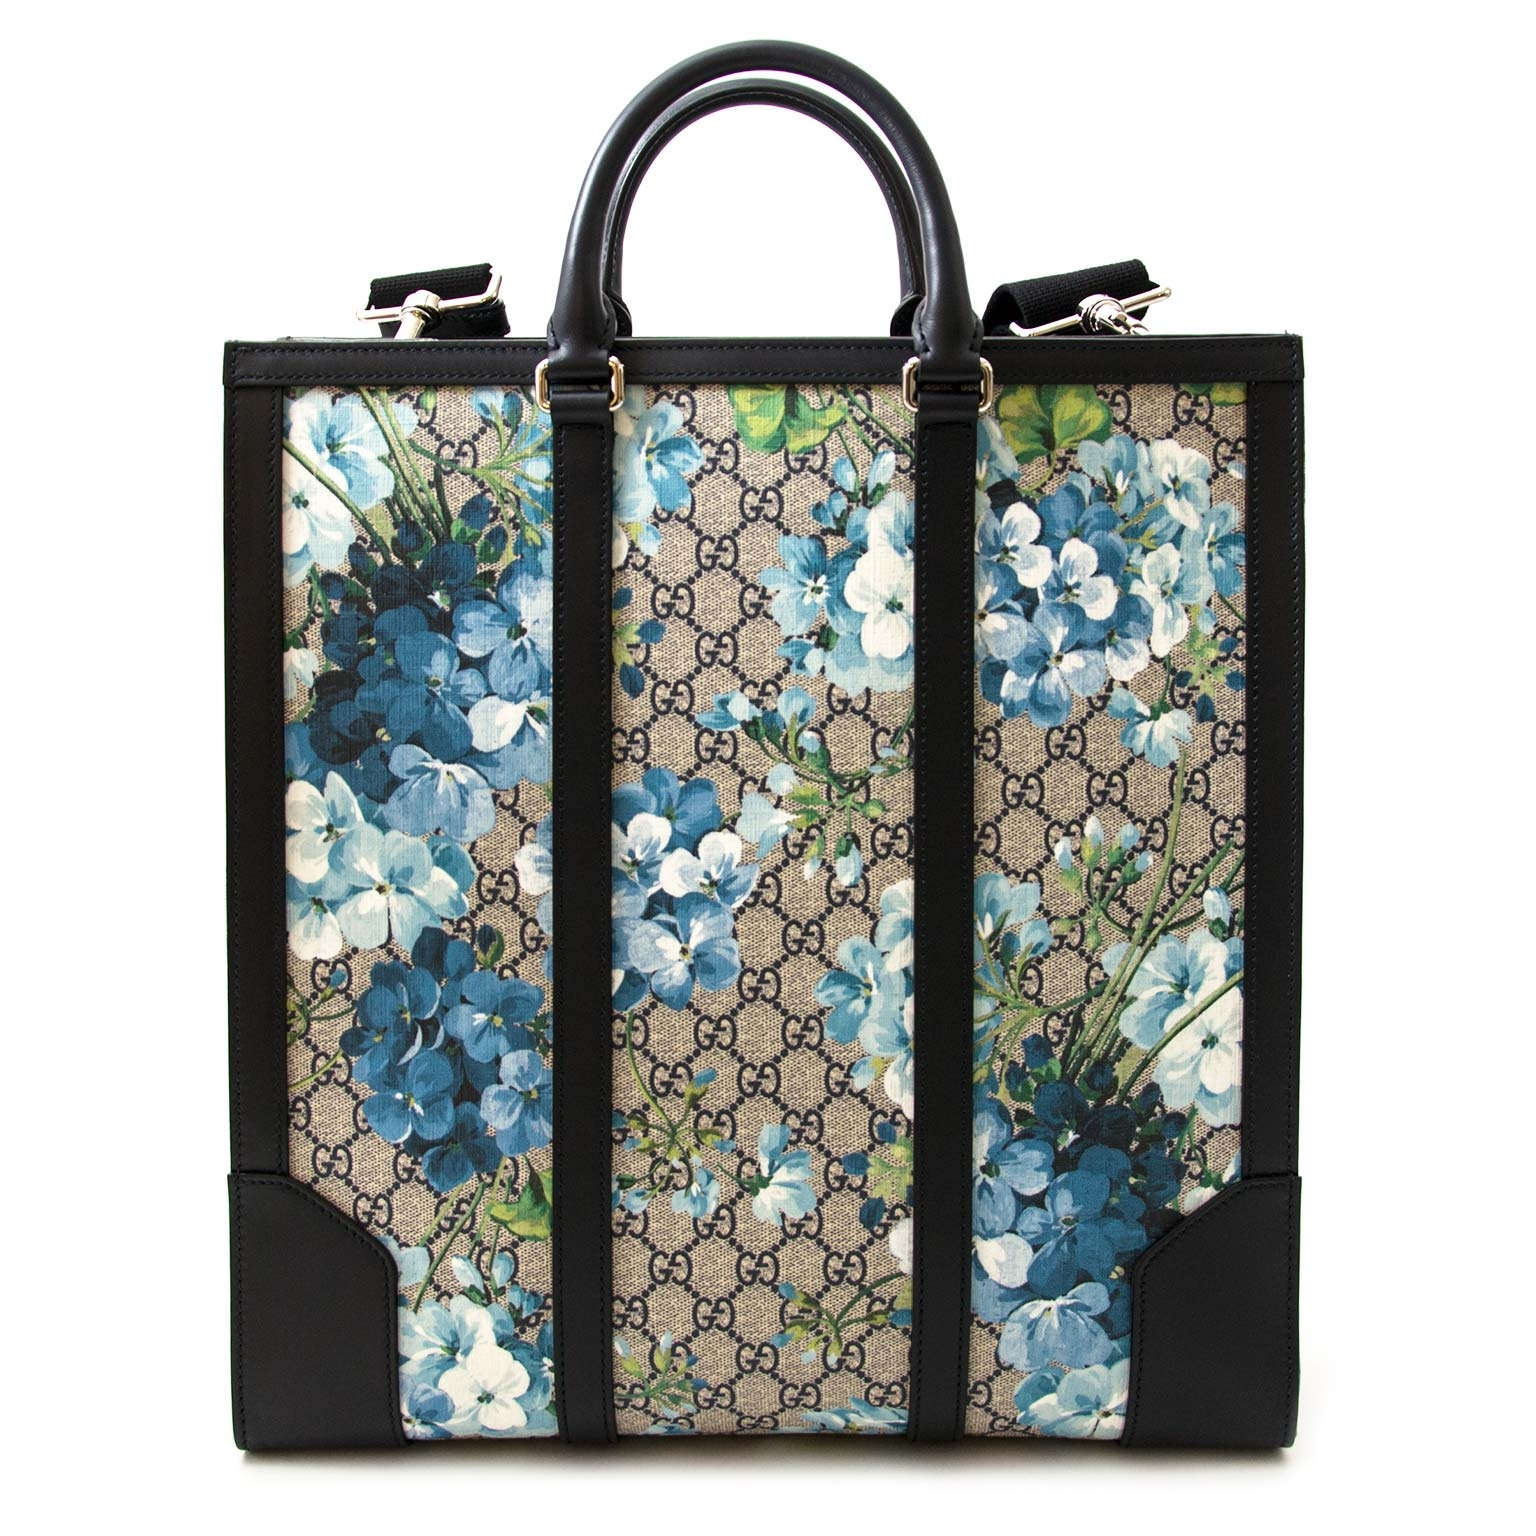 acheter en ligne seconde main Gucci Supreme Monogram Blooms Print Tote Blue